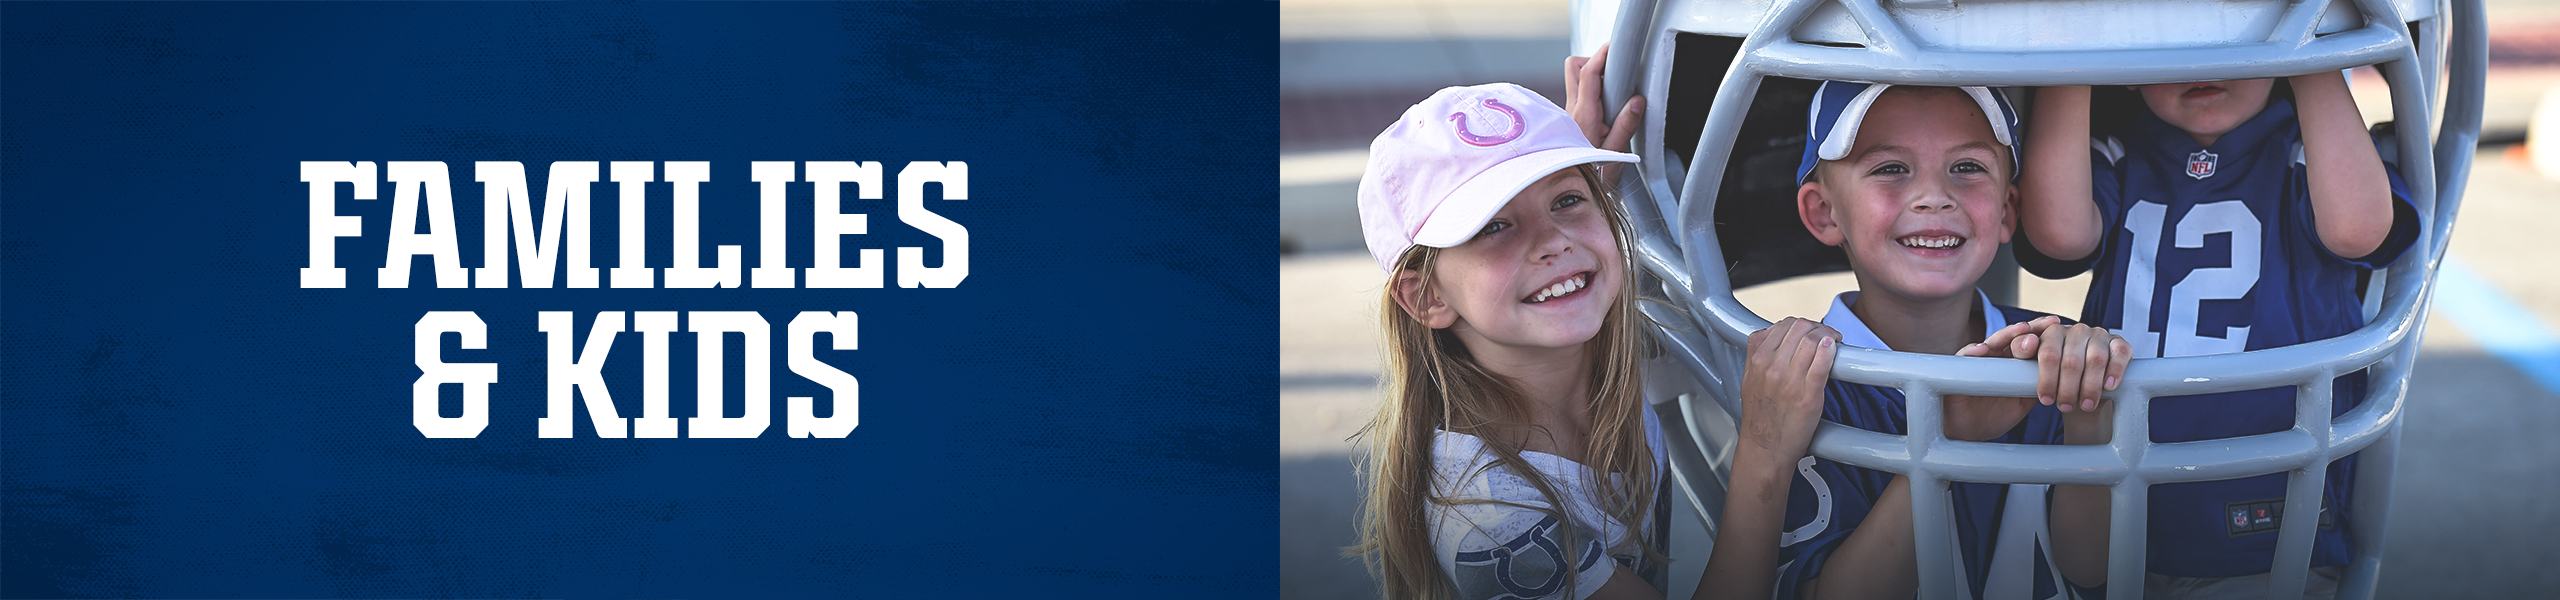 Indianapolis Colts Gameday Families And Kids Information